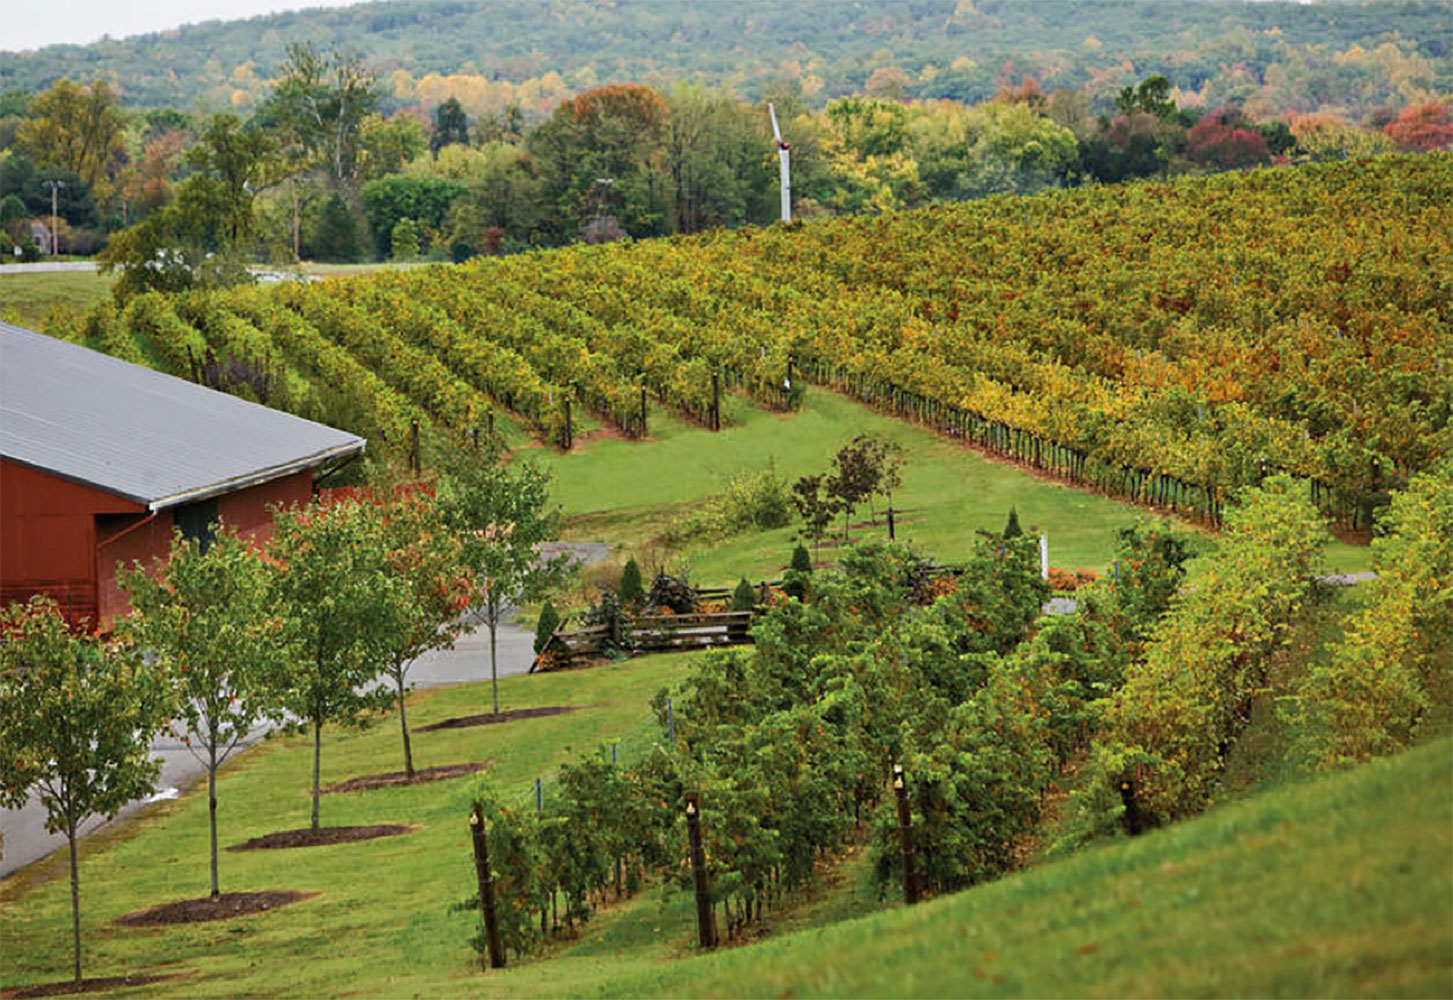 Virginia's Wine Country Hills